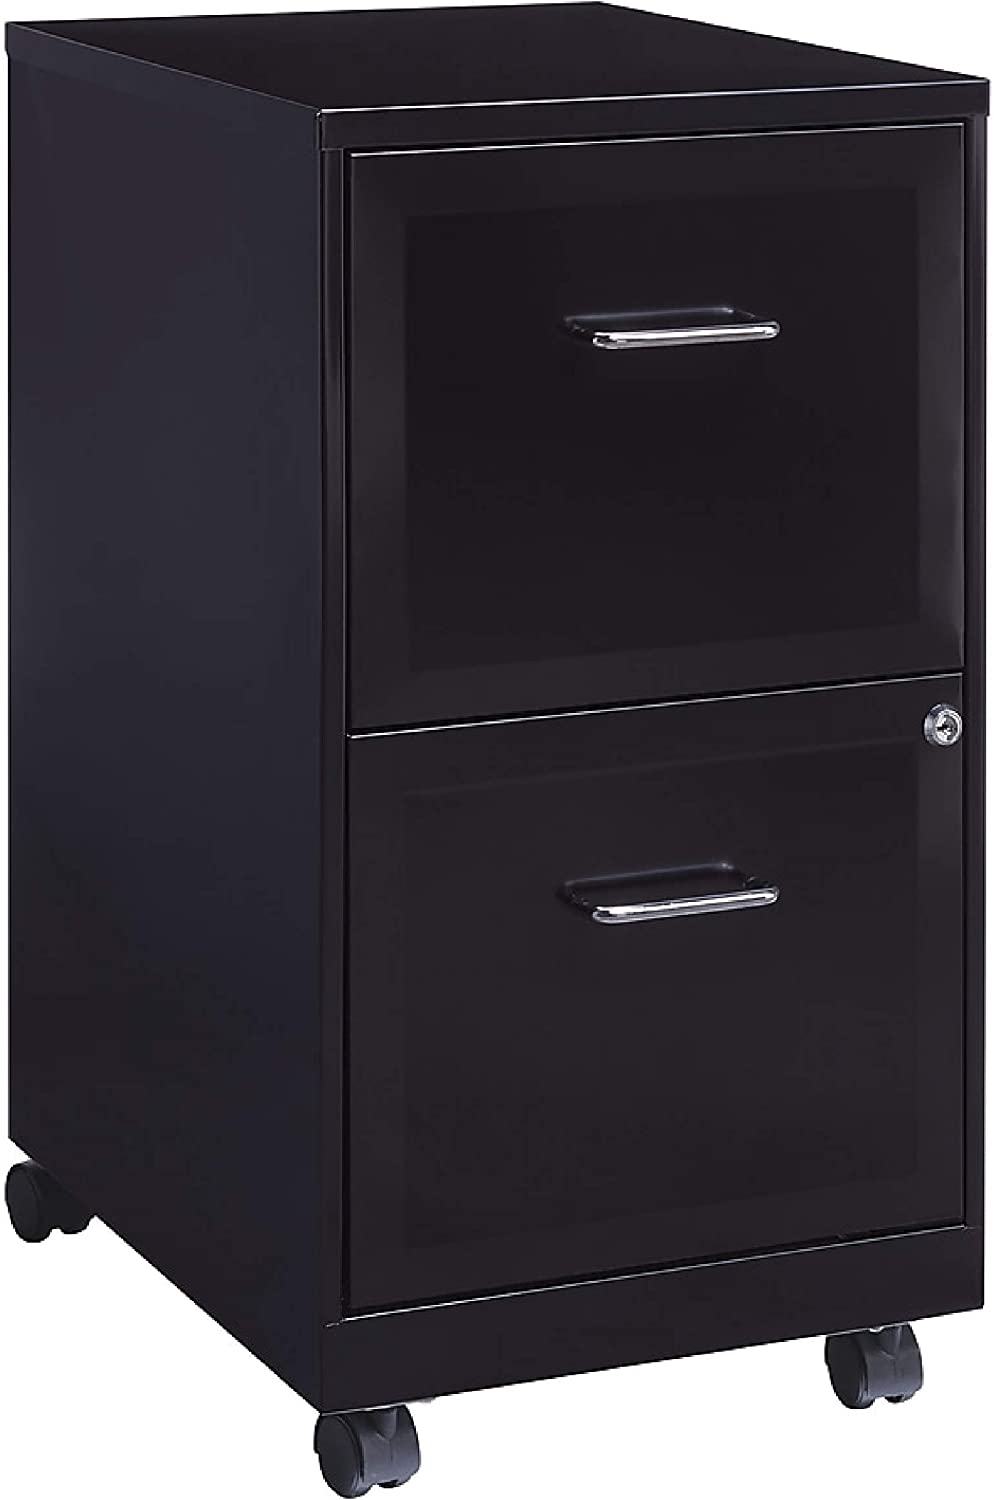 Amazonsmile Staples 2 Drawer Vertical Locking File Cabinet Black Sold As 1 Each Holds Letter Size Documents Filing Cabinet Drawer Filing Cabinet Cabinet